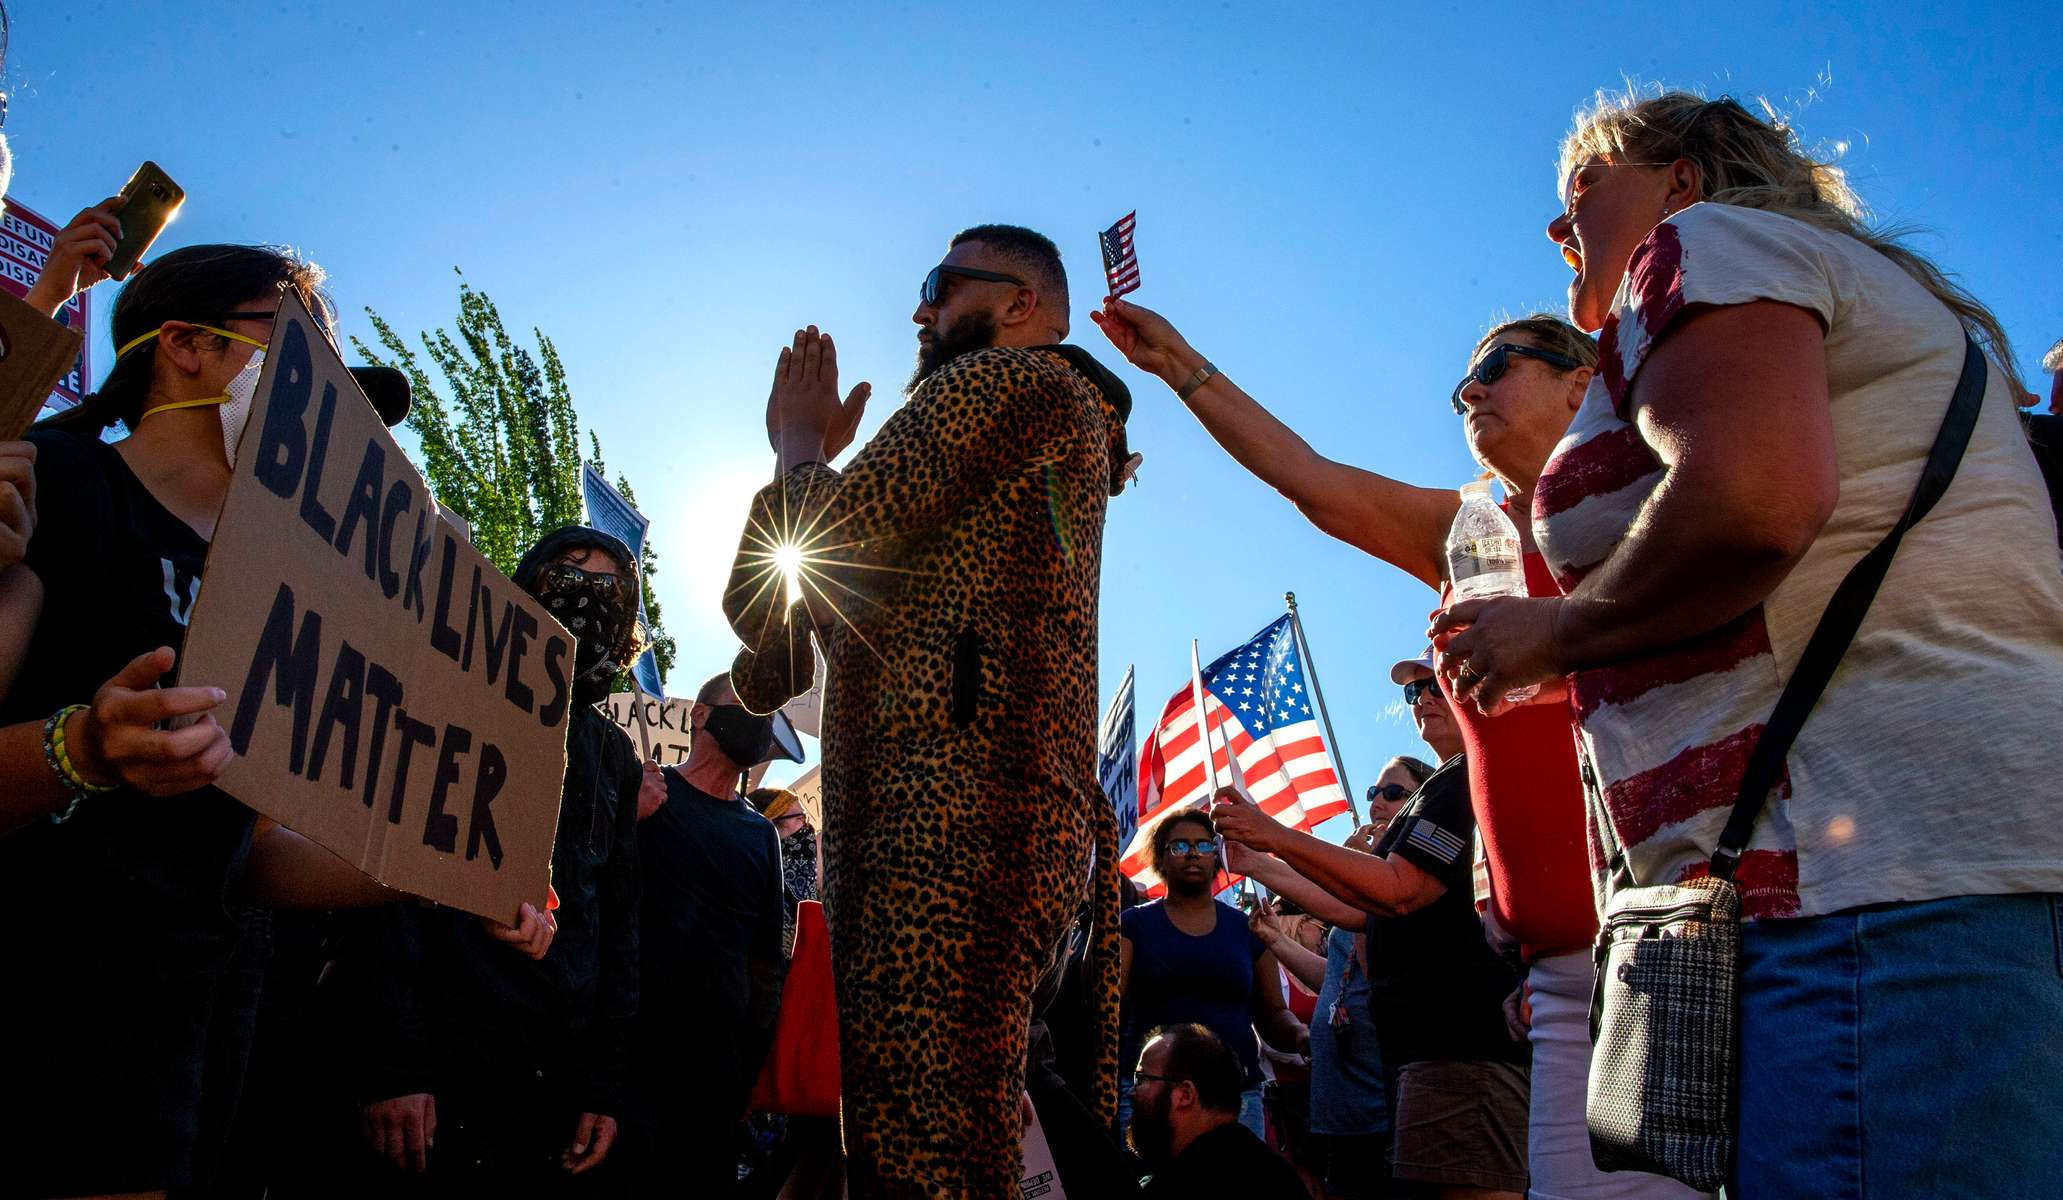 Isiah Wagoner works to keep the peace between pro-police demonstrators and a counterprotester at Springfield City Hall in Springfield, Oregon on June, 22, 2020.